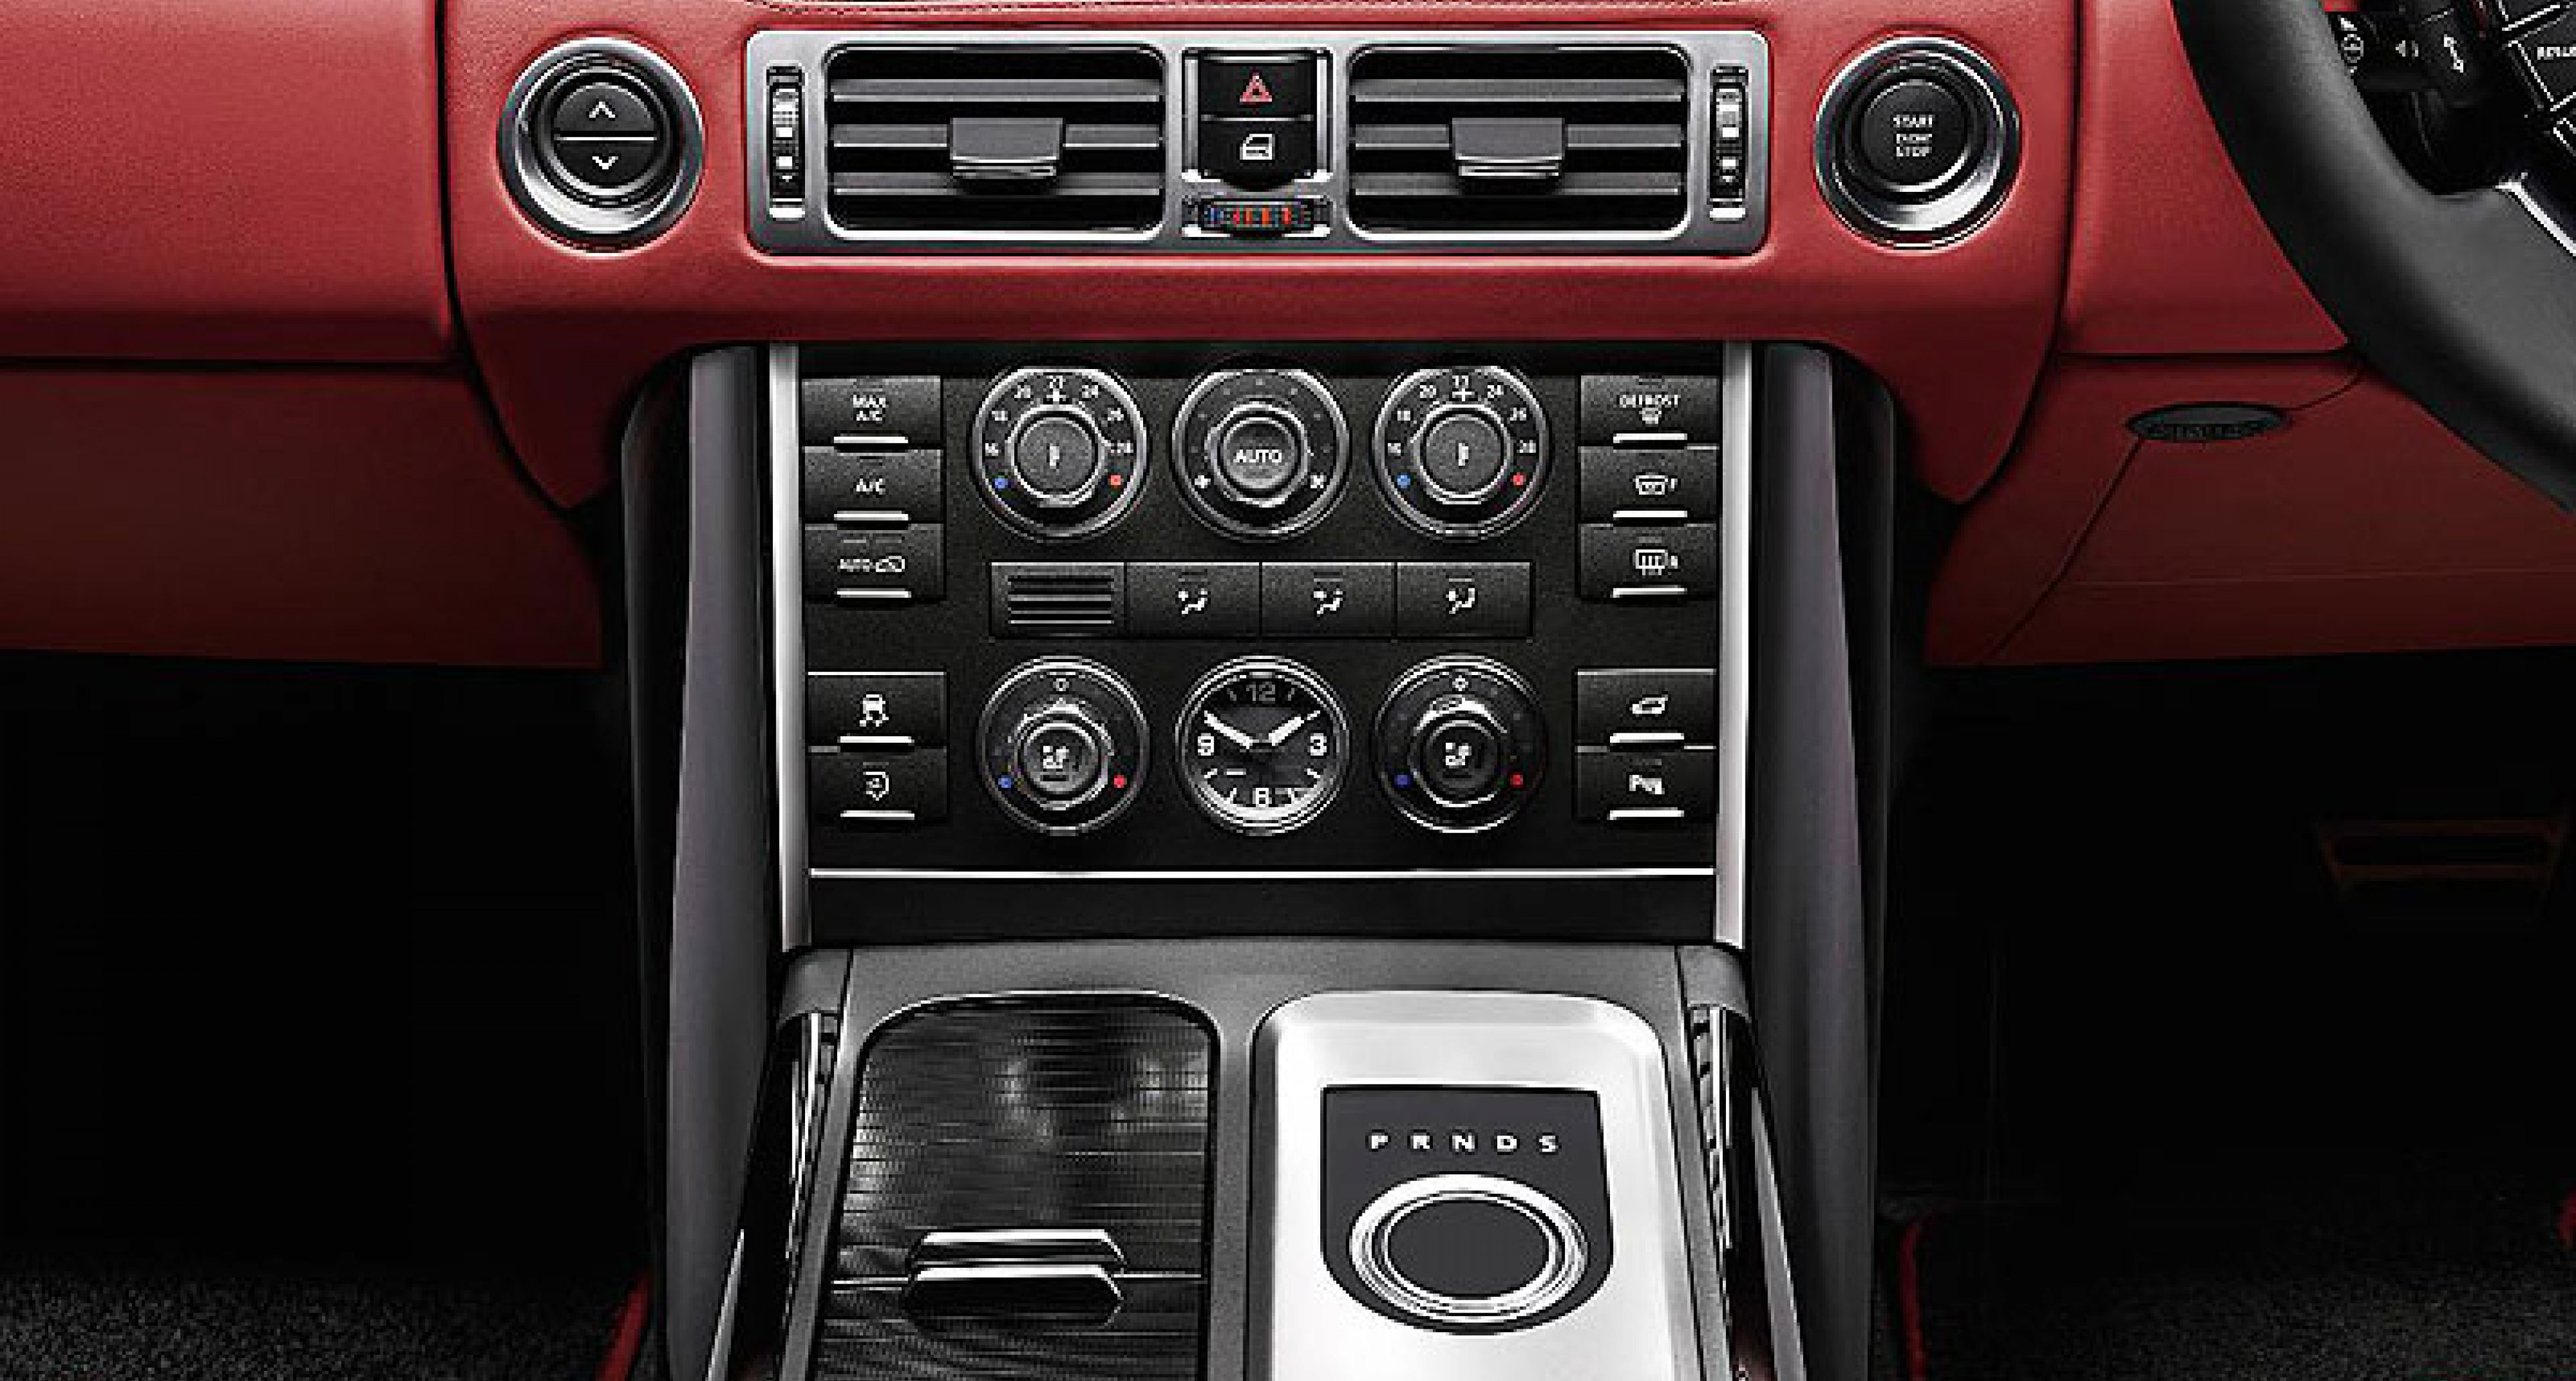 2011 Range Rover: New V8 Diesel and 8-Speed Auto